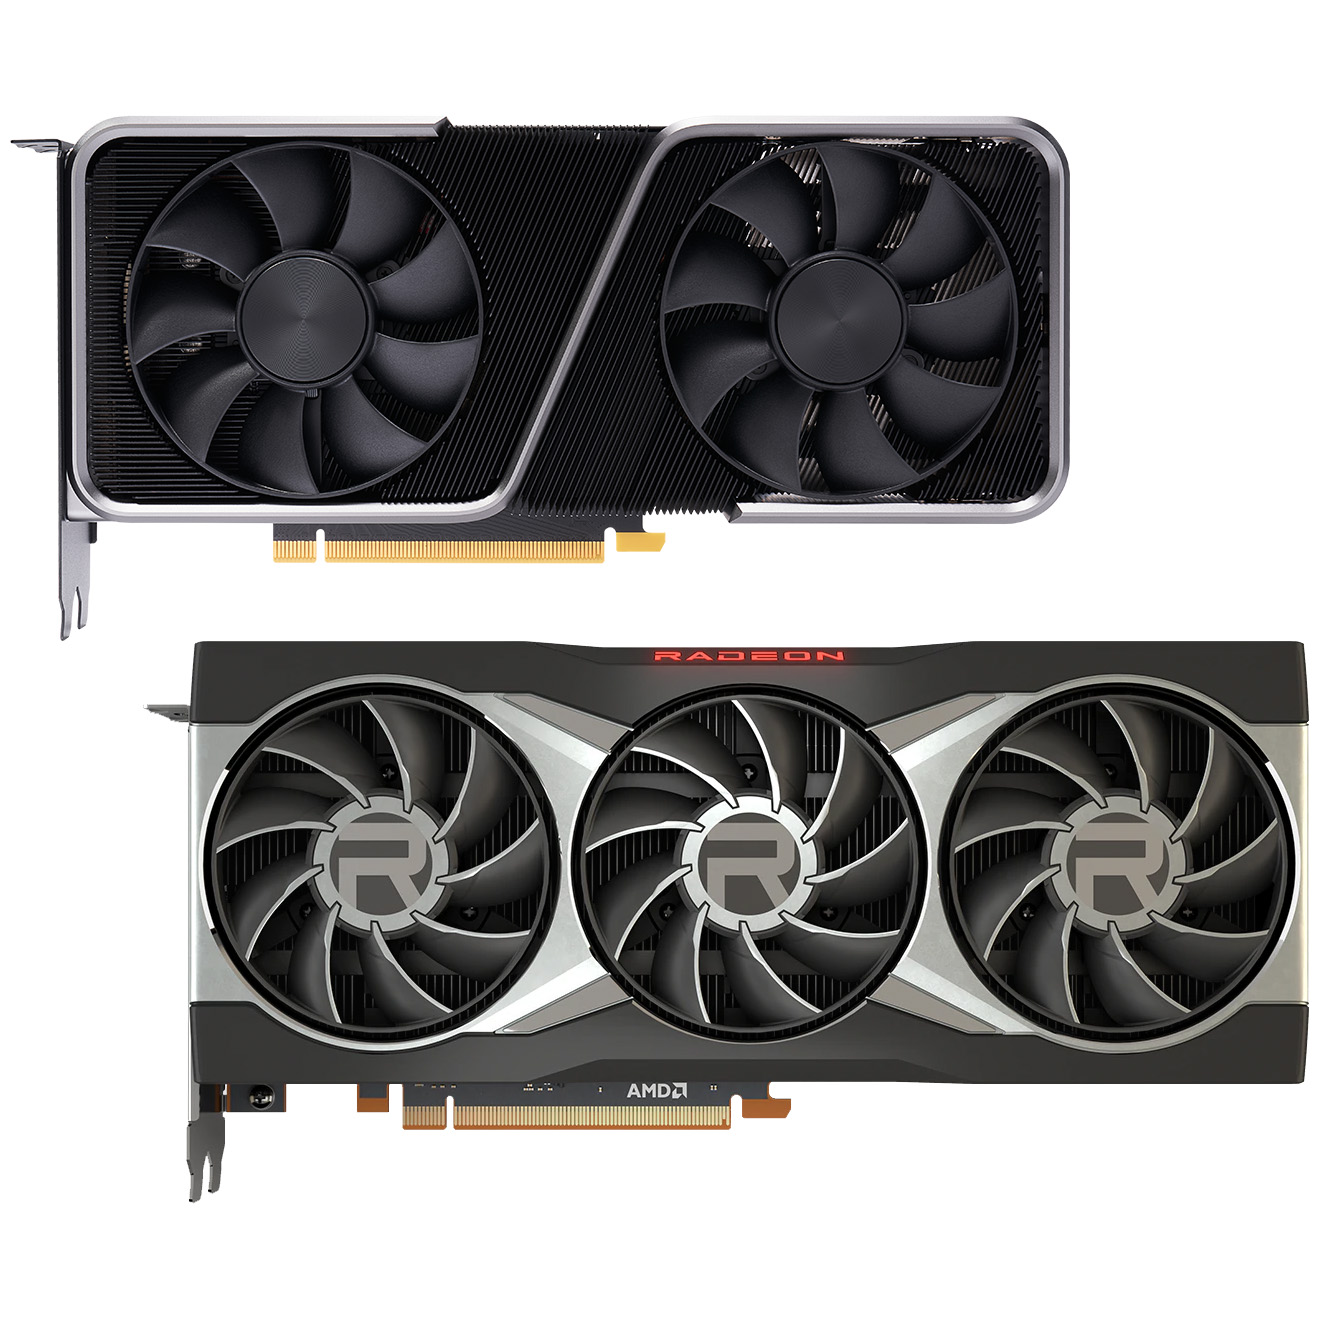 AMD Radeon RX 6700 XT and NVIDIA GeForce RTX 3070 - Thumbnail